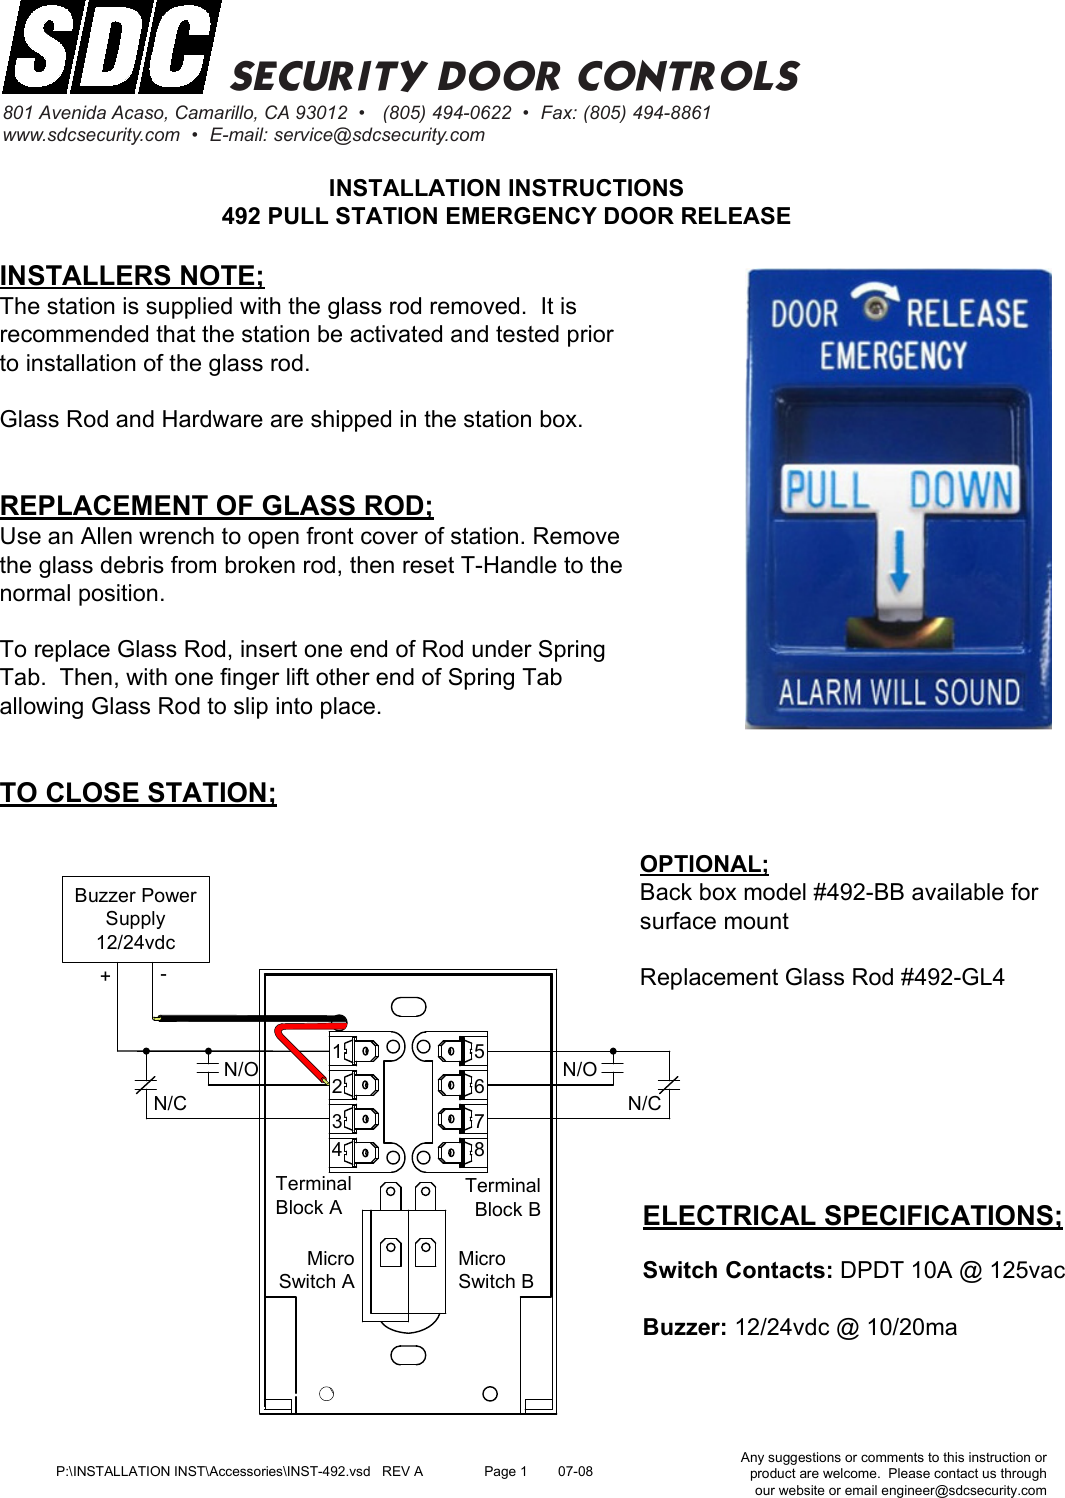 Sdc Visio Inst 491 492 Emergency Door Release Pull Station 24vdc Buzzer Wiring Diagram Installation Instructions